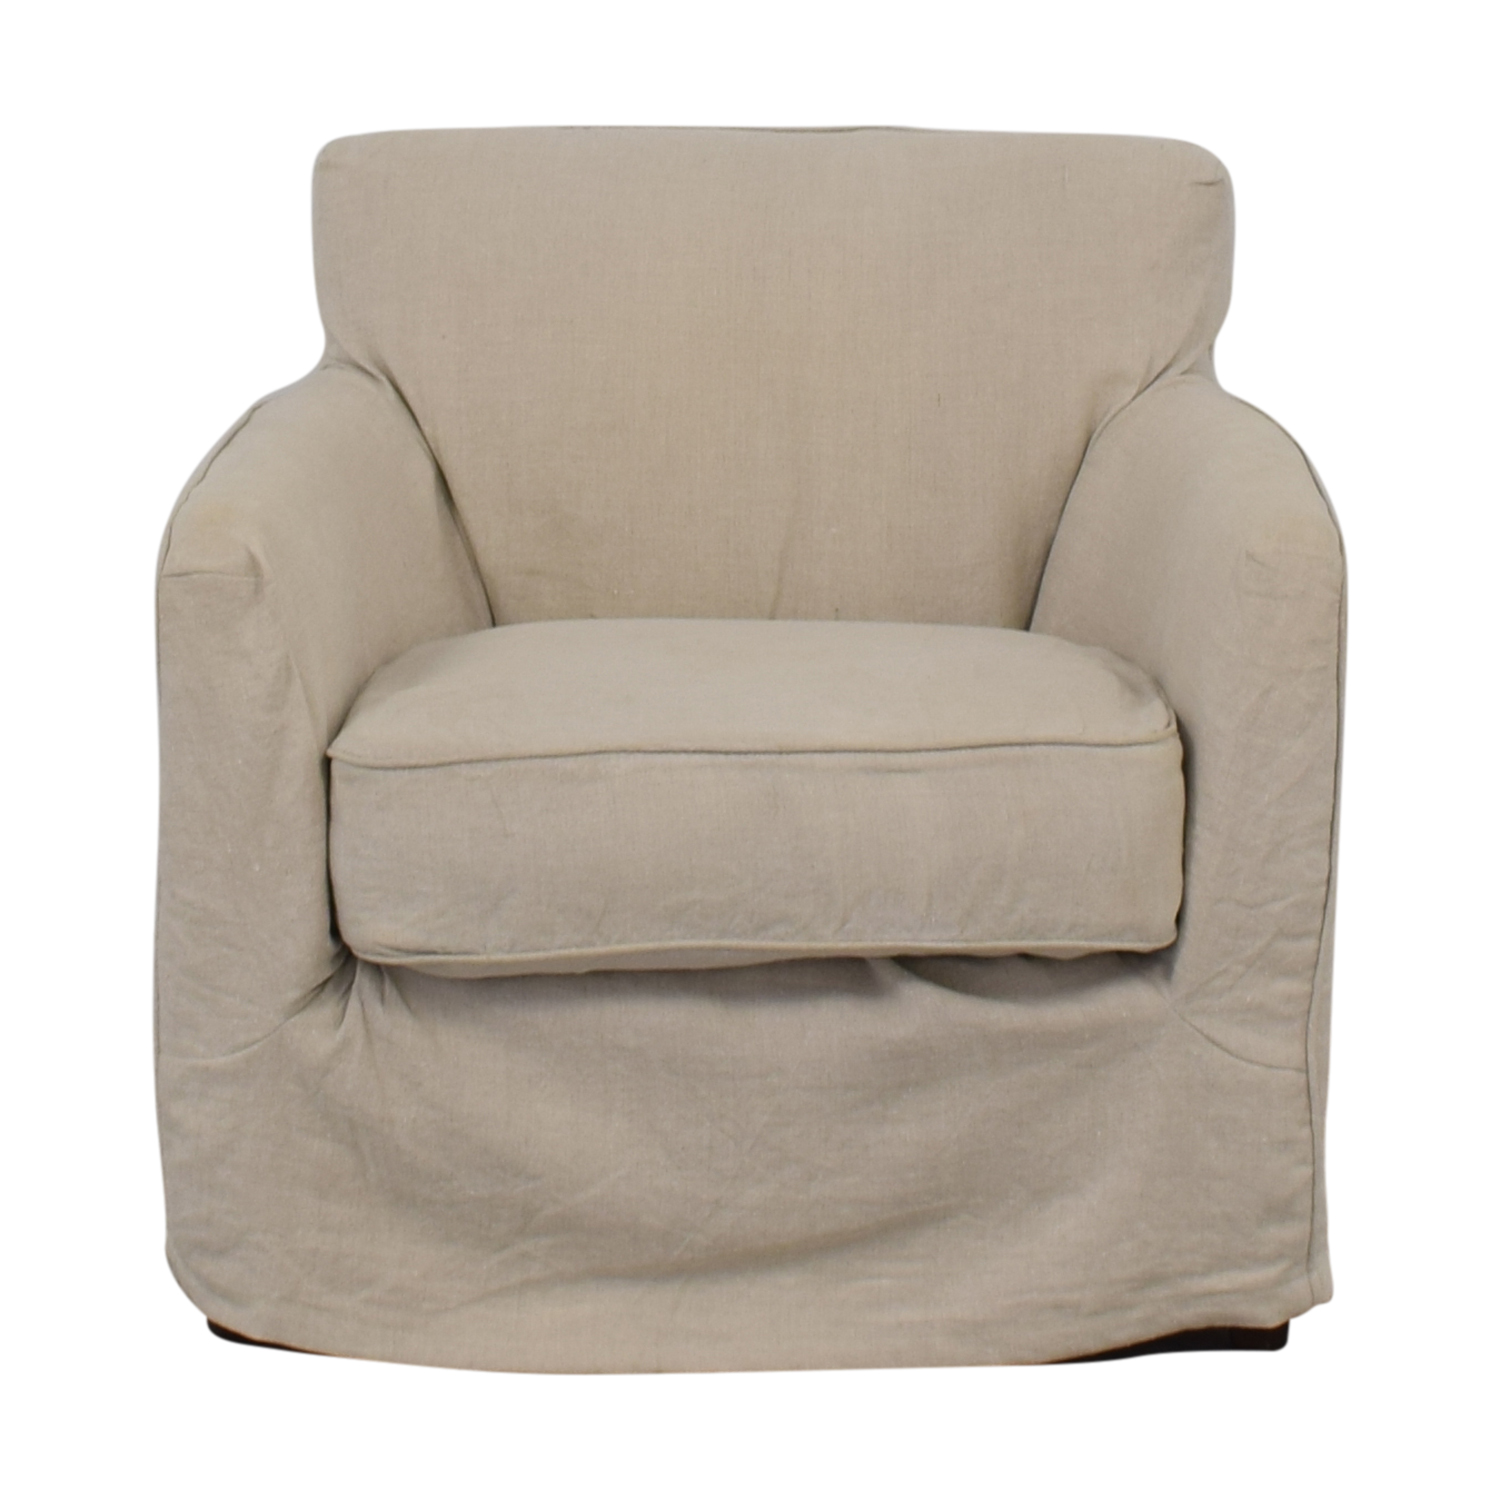 Crate & Barrel Crate & Barrel Linen Slipcovered Armchair for sale